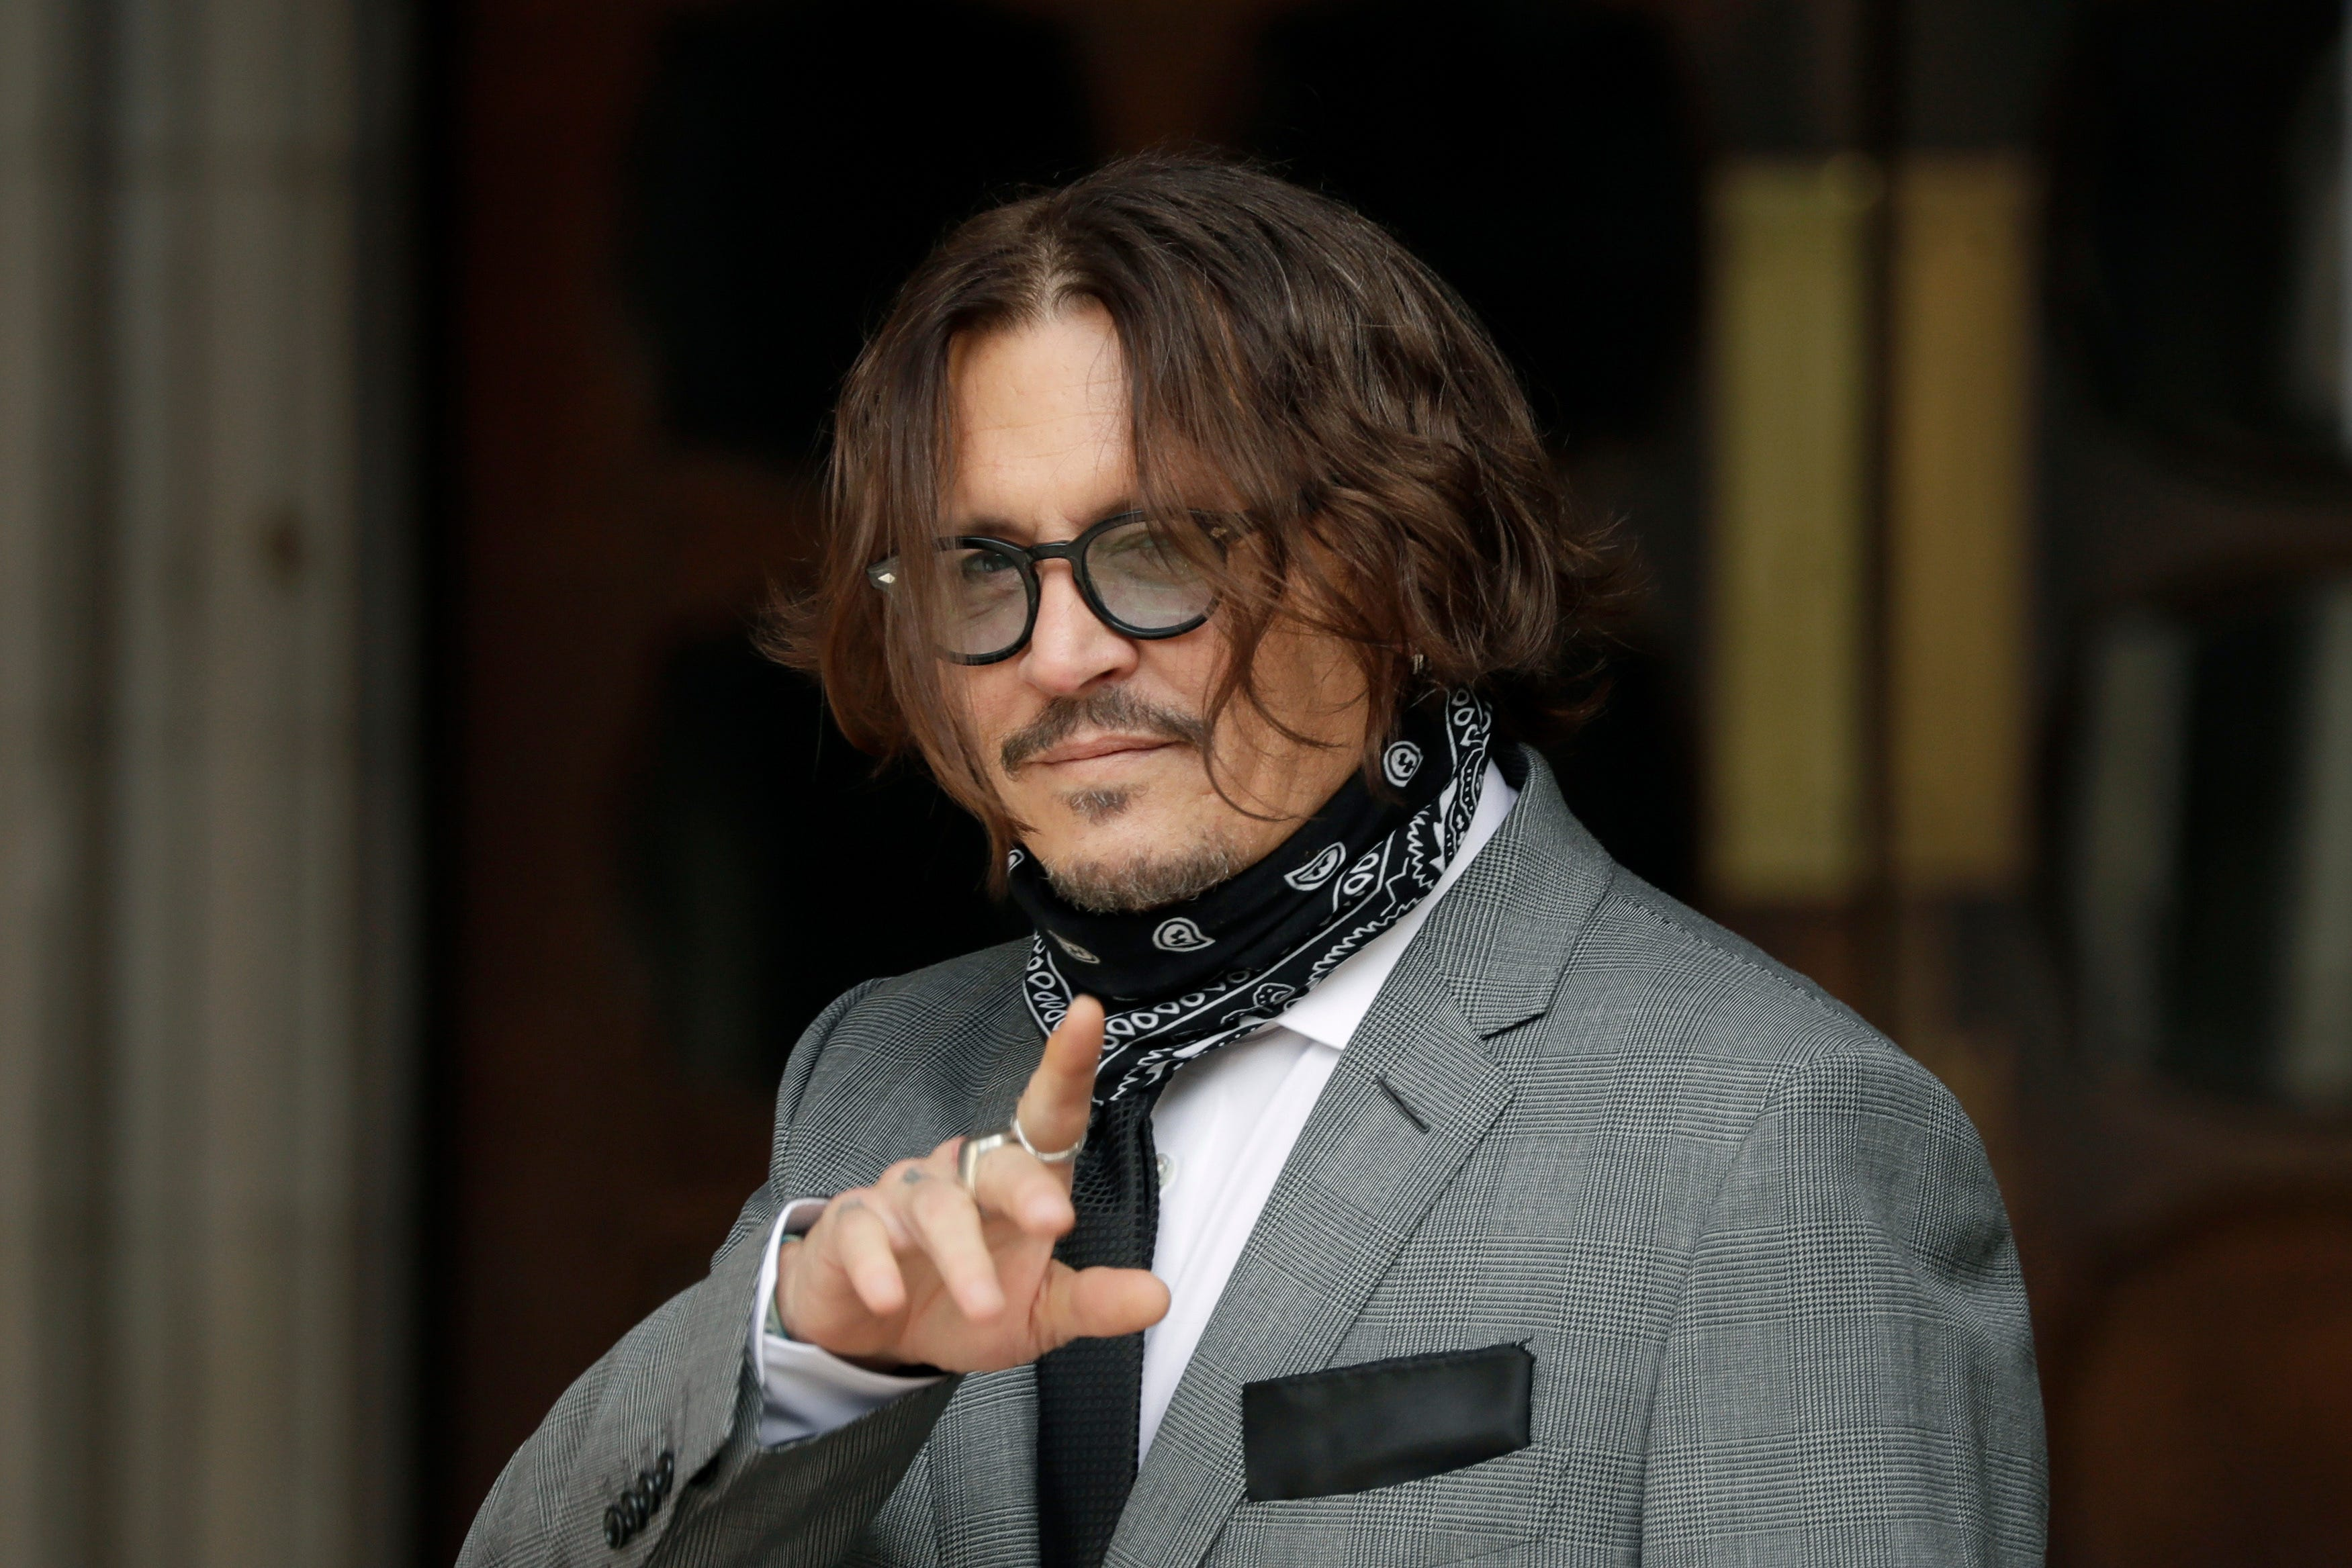 Judge sides with Johnny Depp: ACLU must reveal if Amber Heard donated $7M divorce settlement